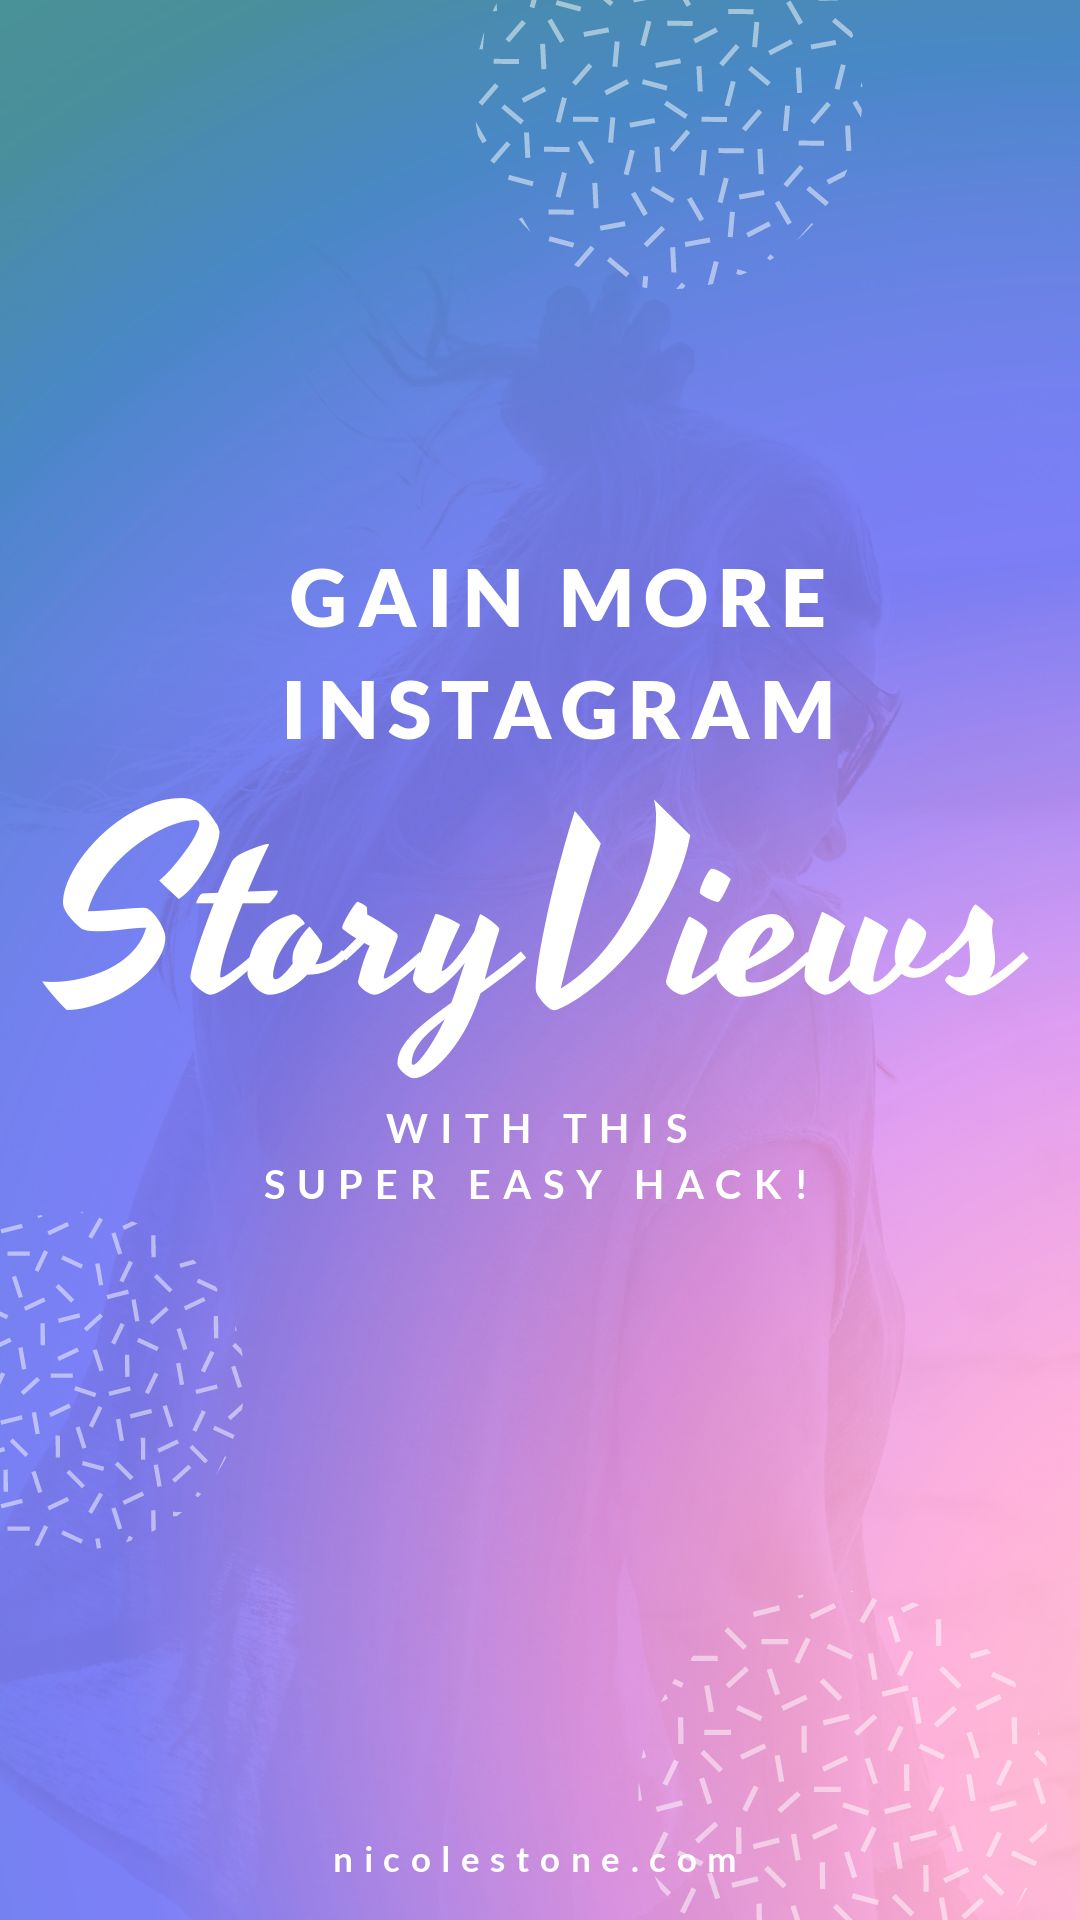 How to gain Instagram story views (and followers) with this super easy hack! #instagram #marketing #socialmedia #blogging